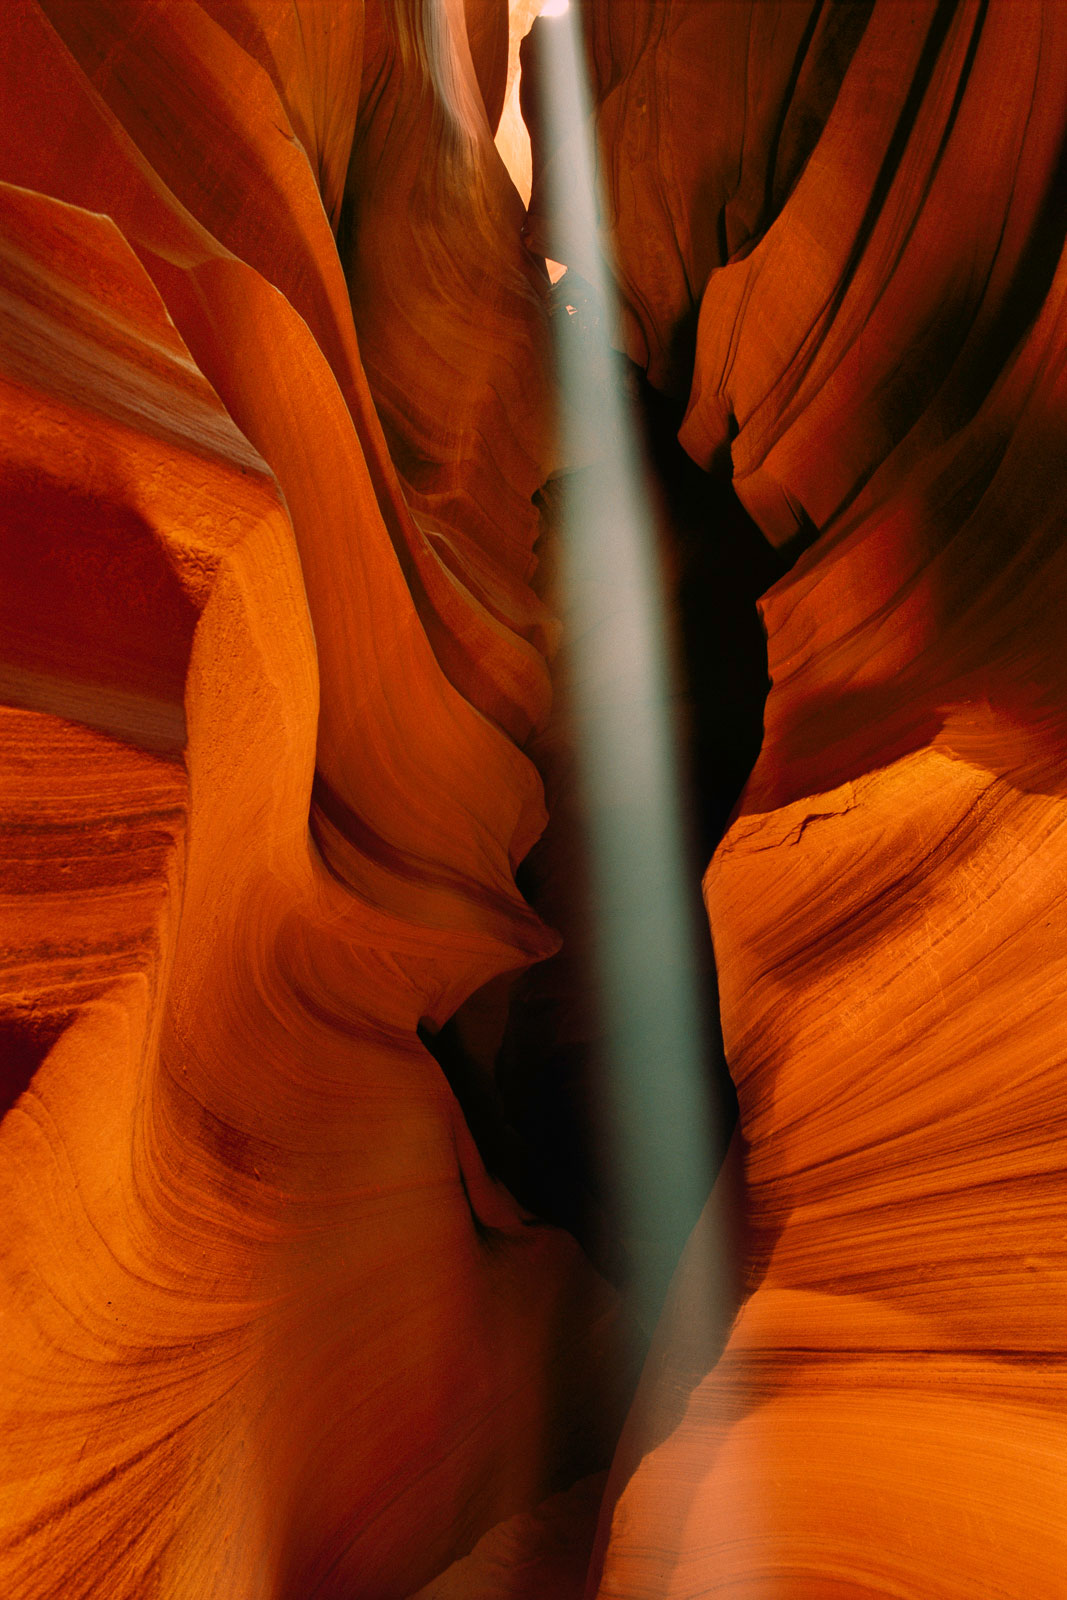 Shaft of light, Antelope Canyon, Arizona, USA